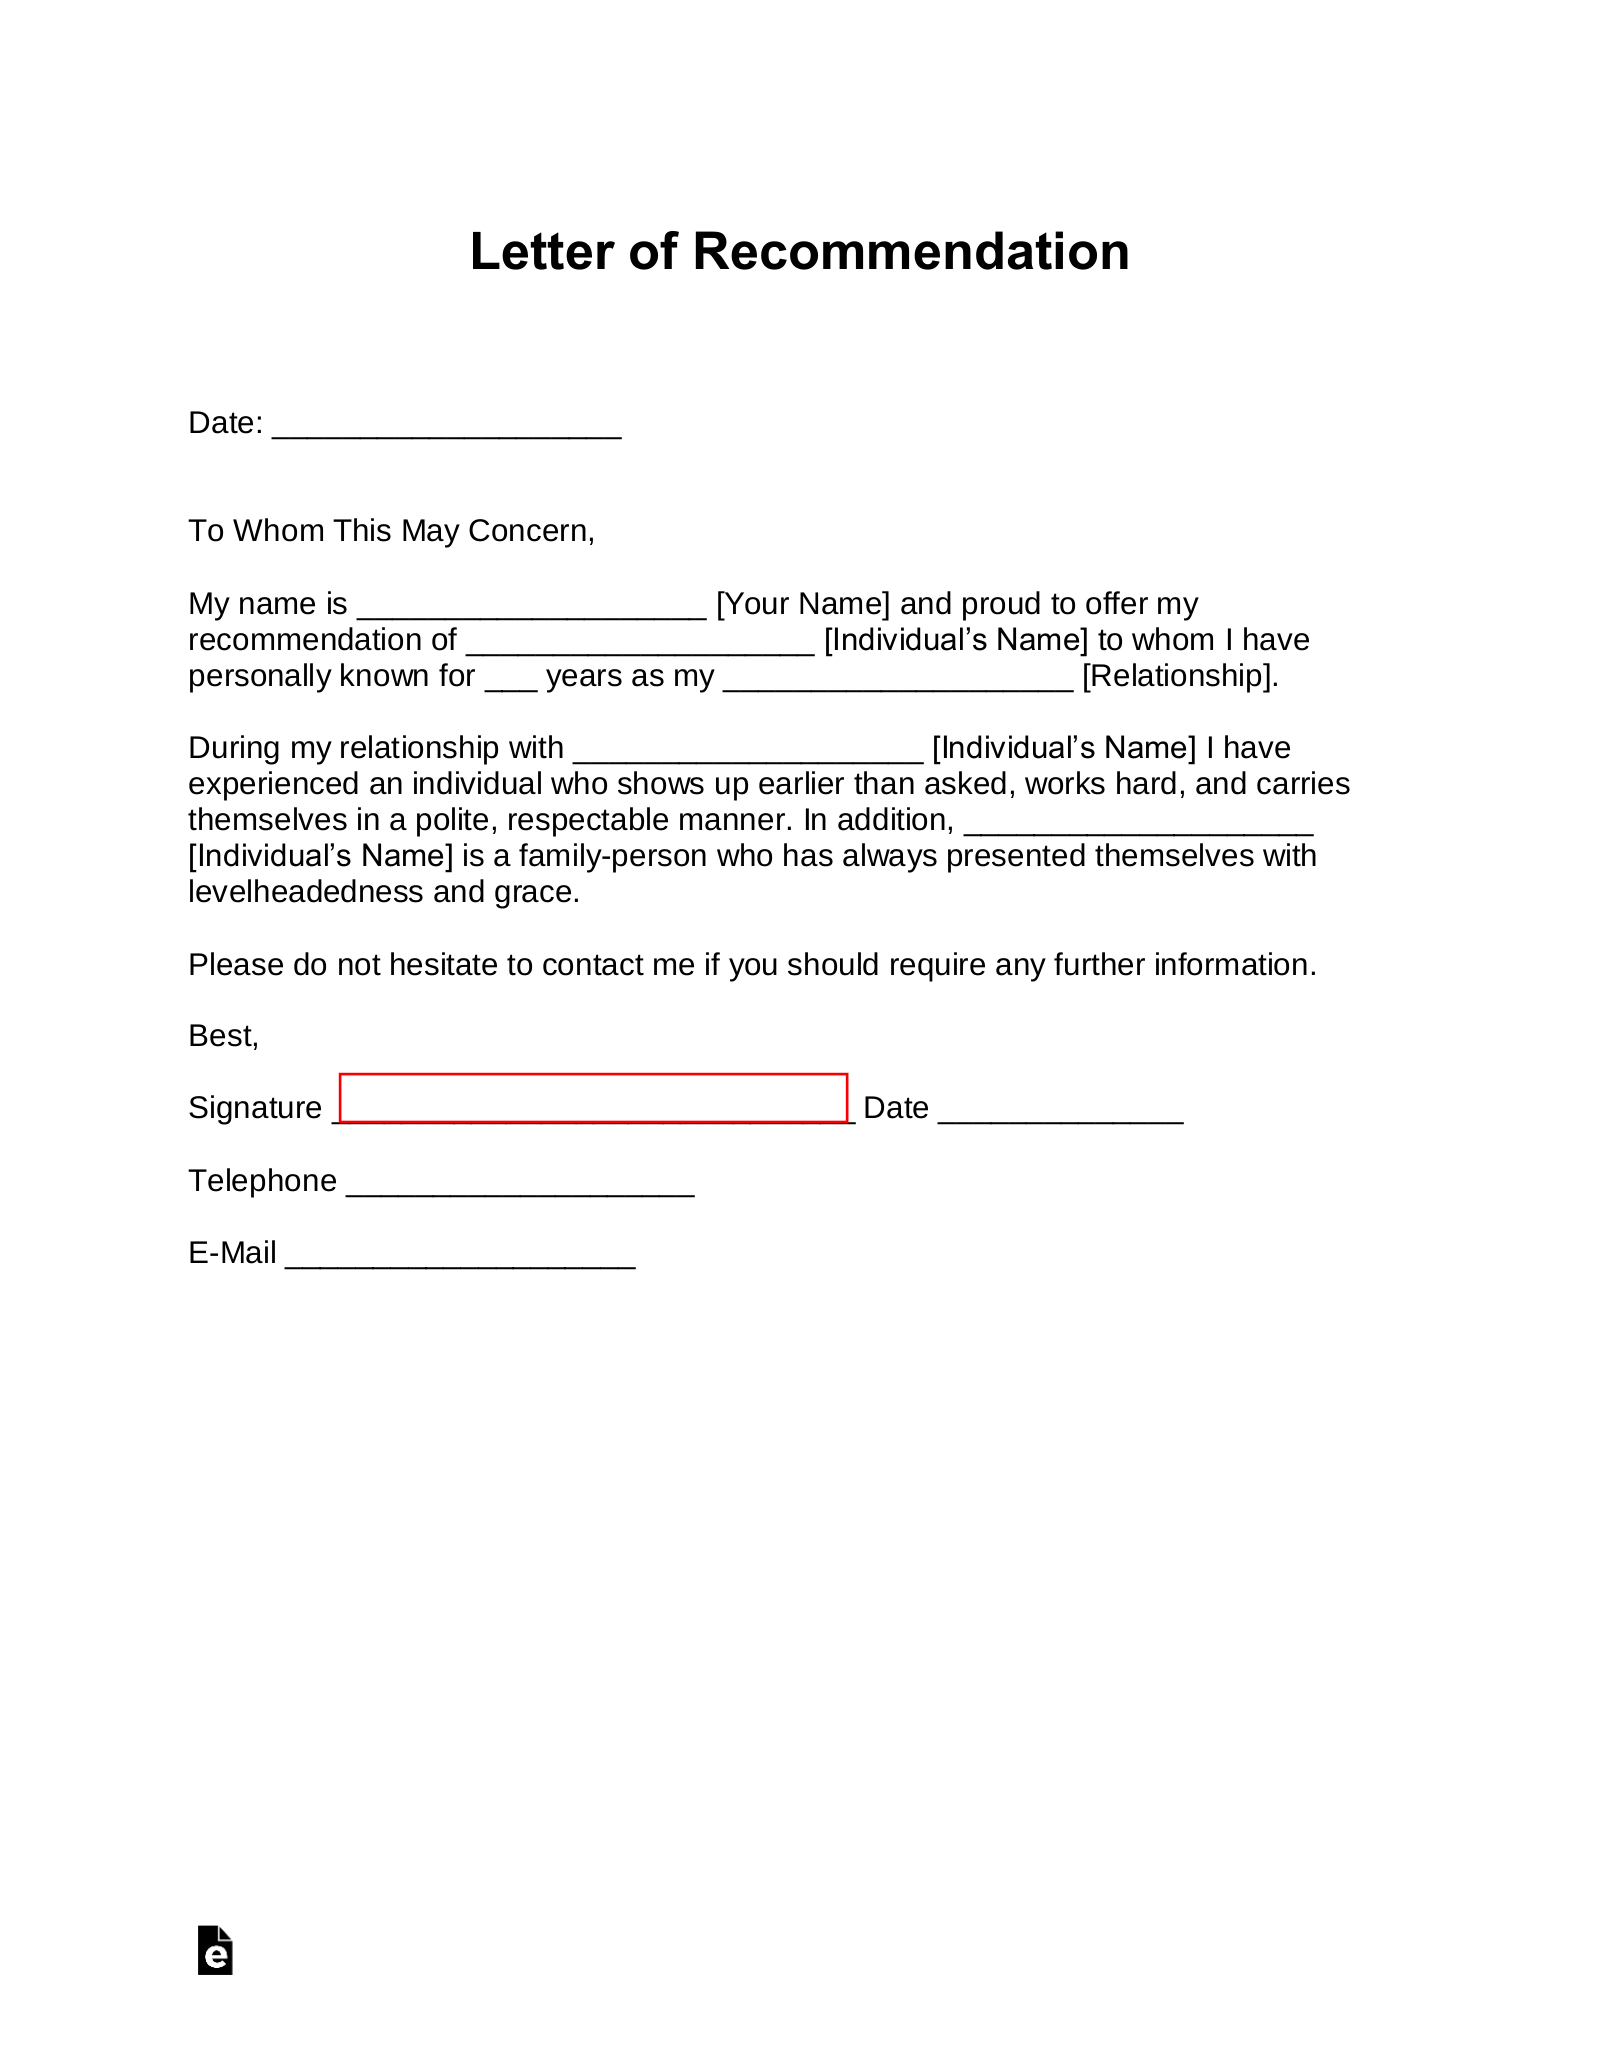 Letter To Former Employer For Rehire Sample from eforms.com